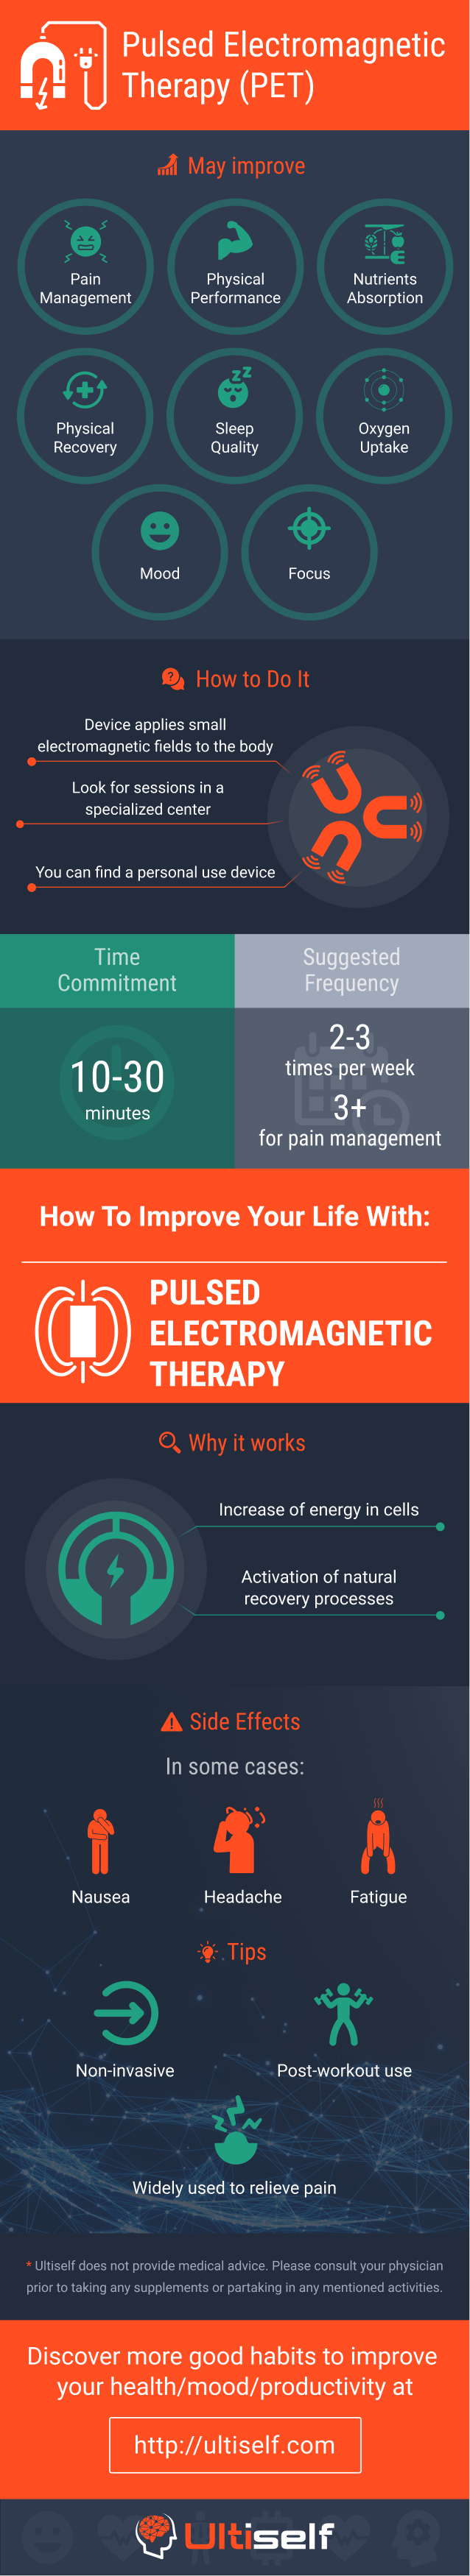 Pulsed Electromagnetic Therapy (PET) infographic